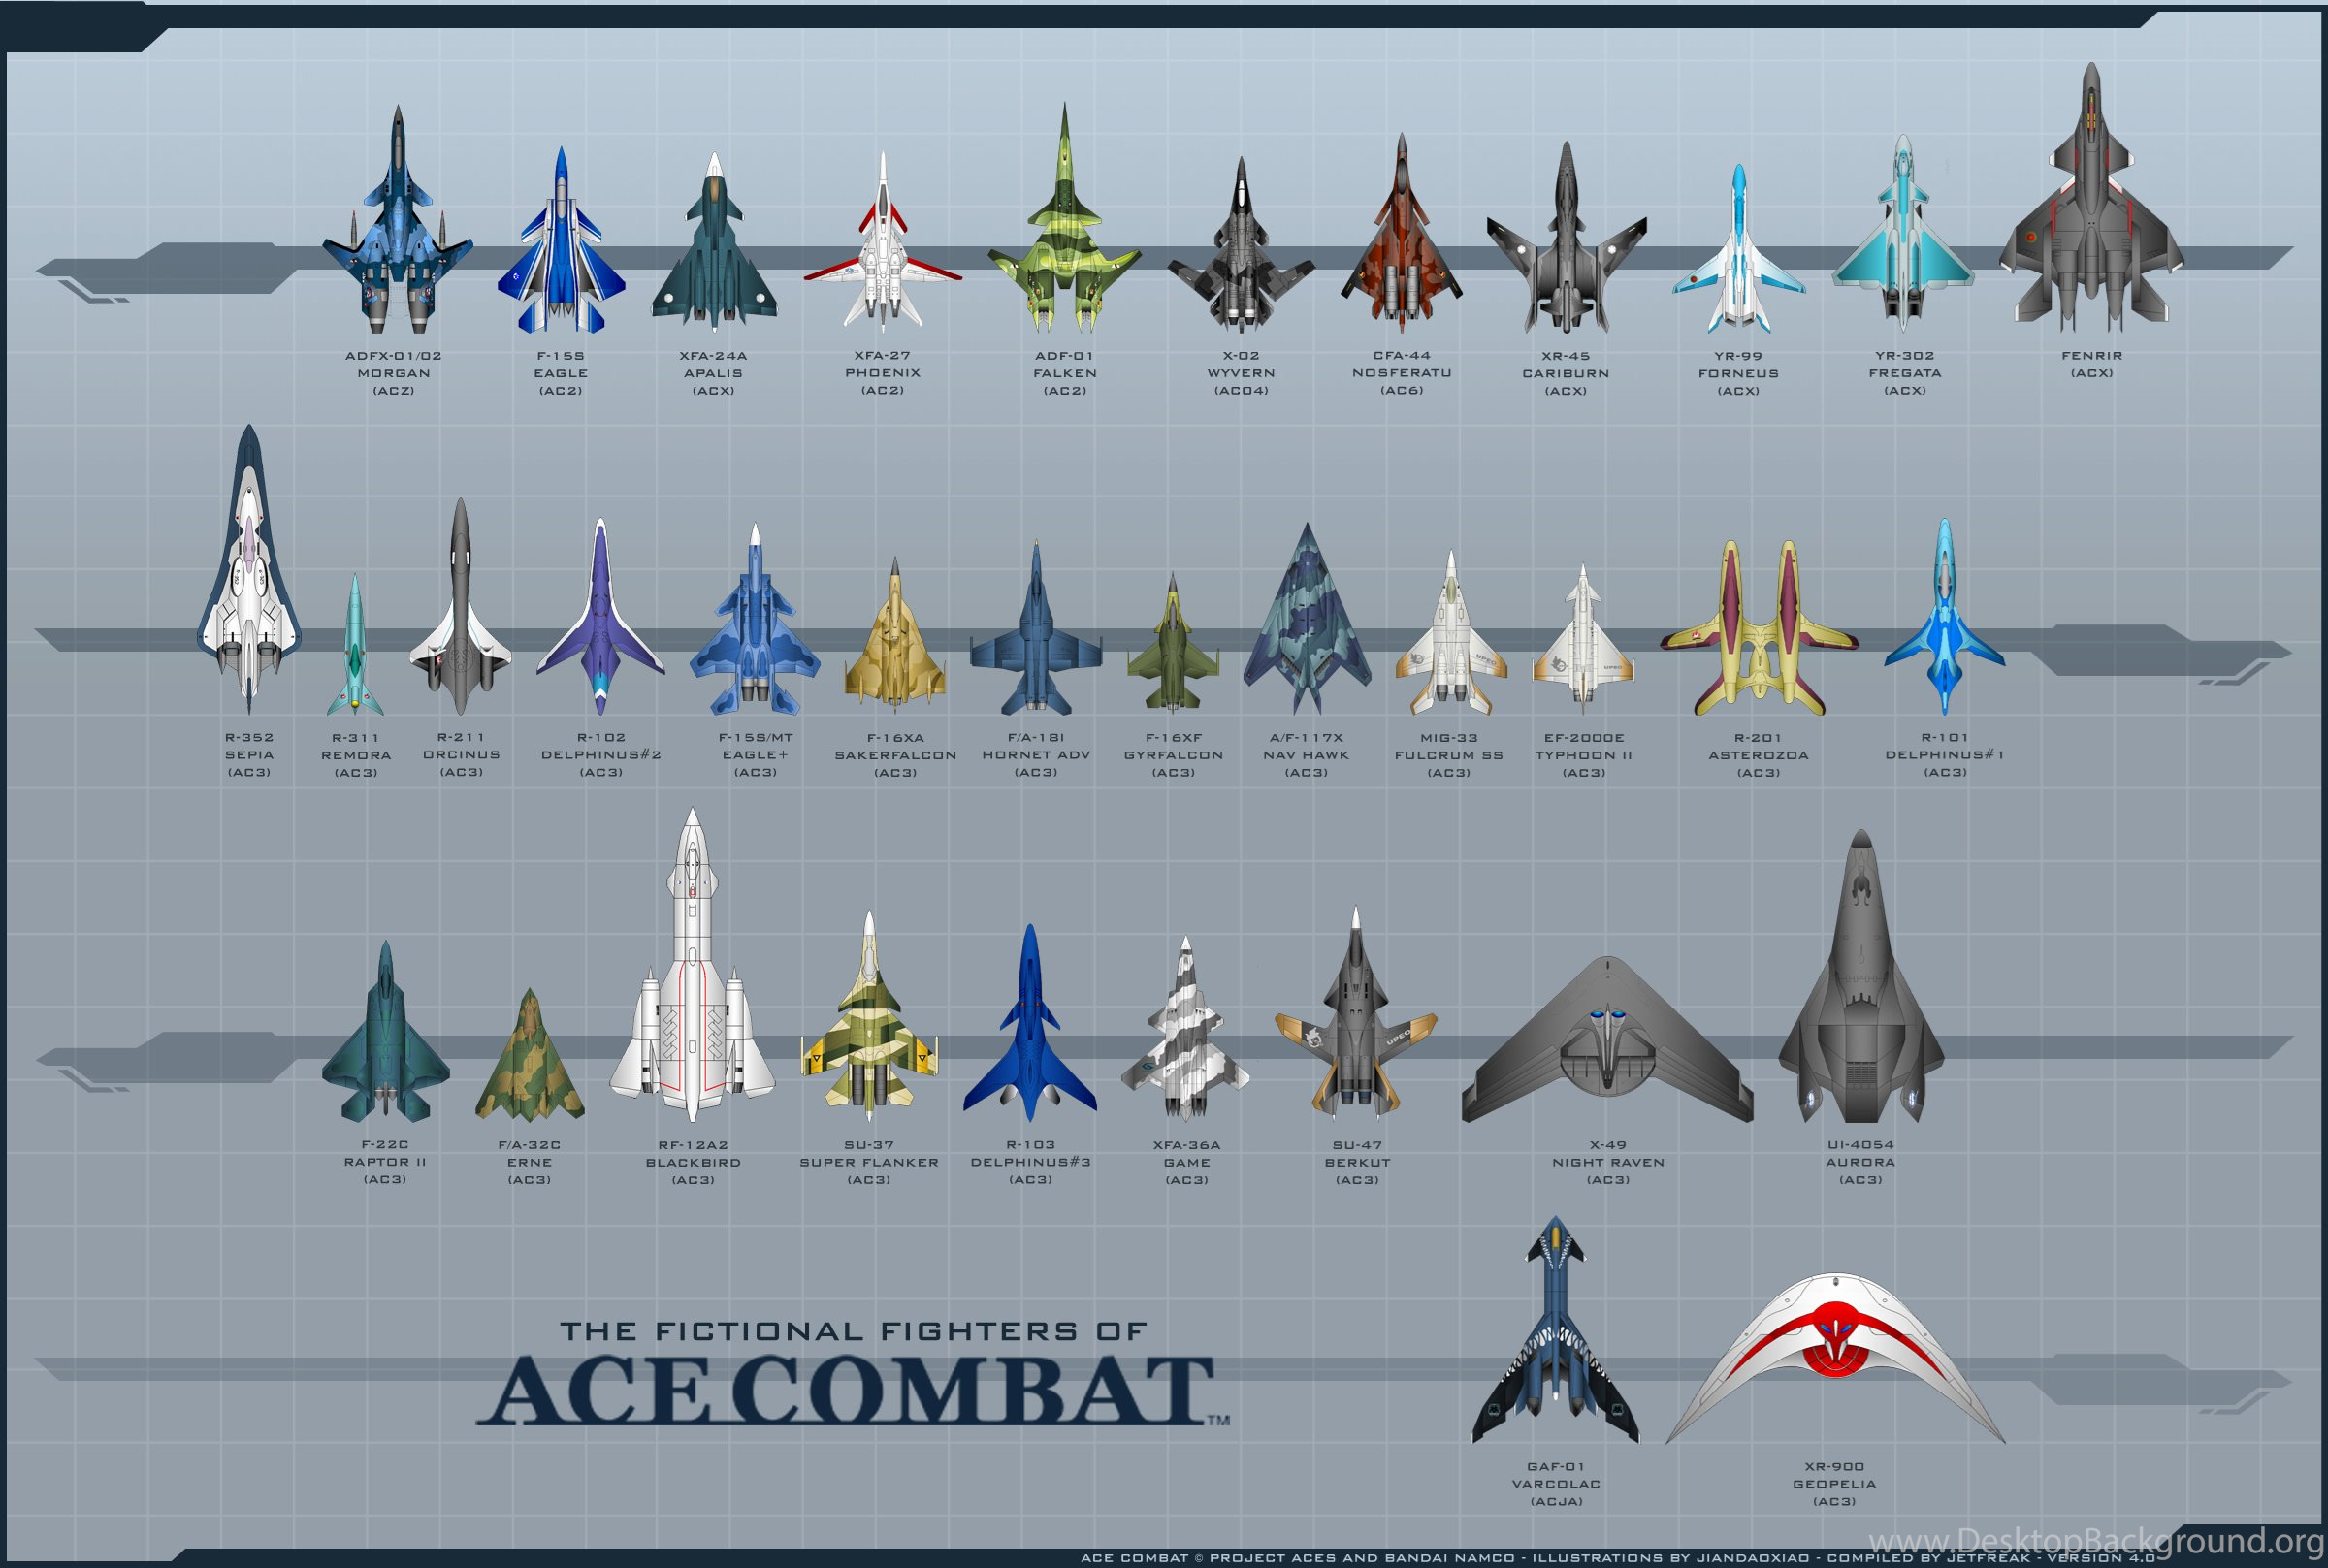 Ace Combat Wallpaper (66+ images)